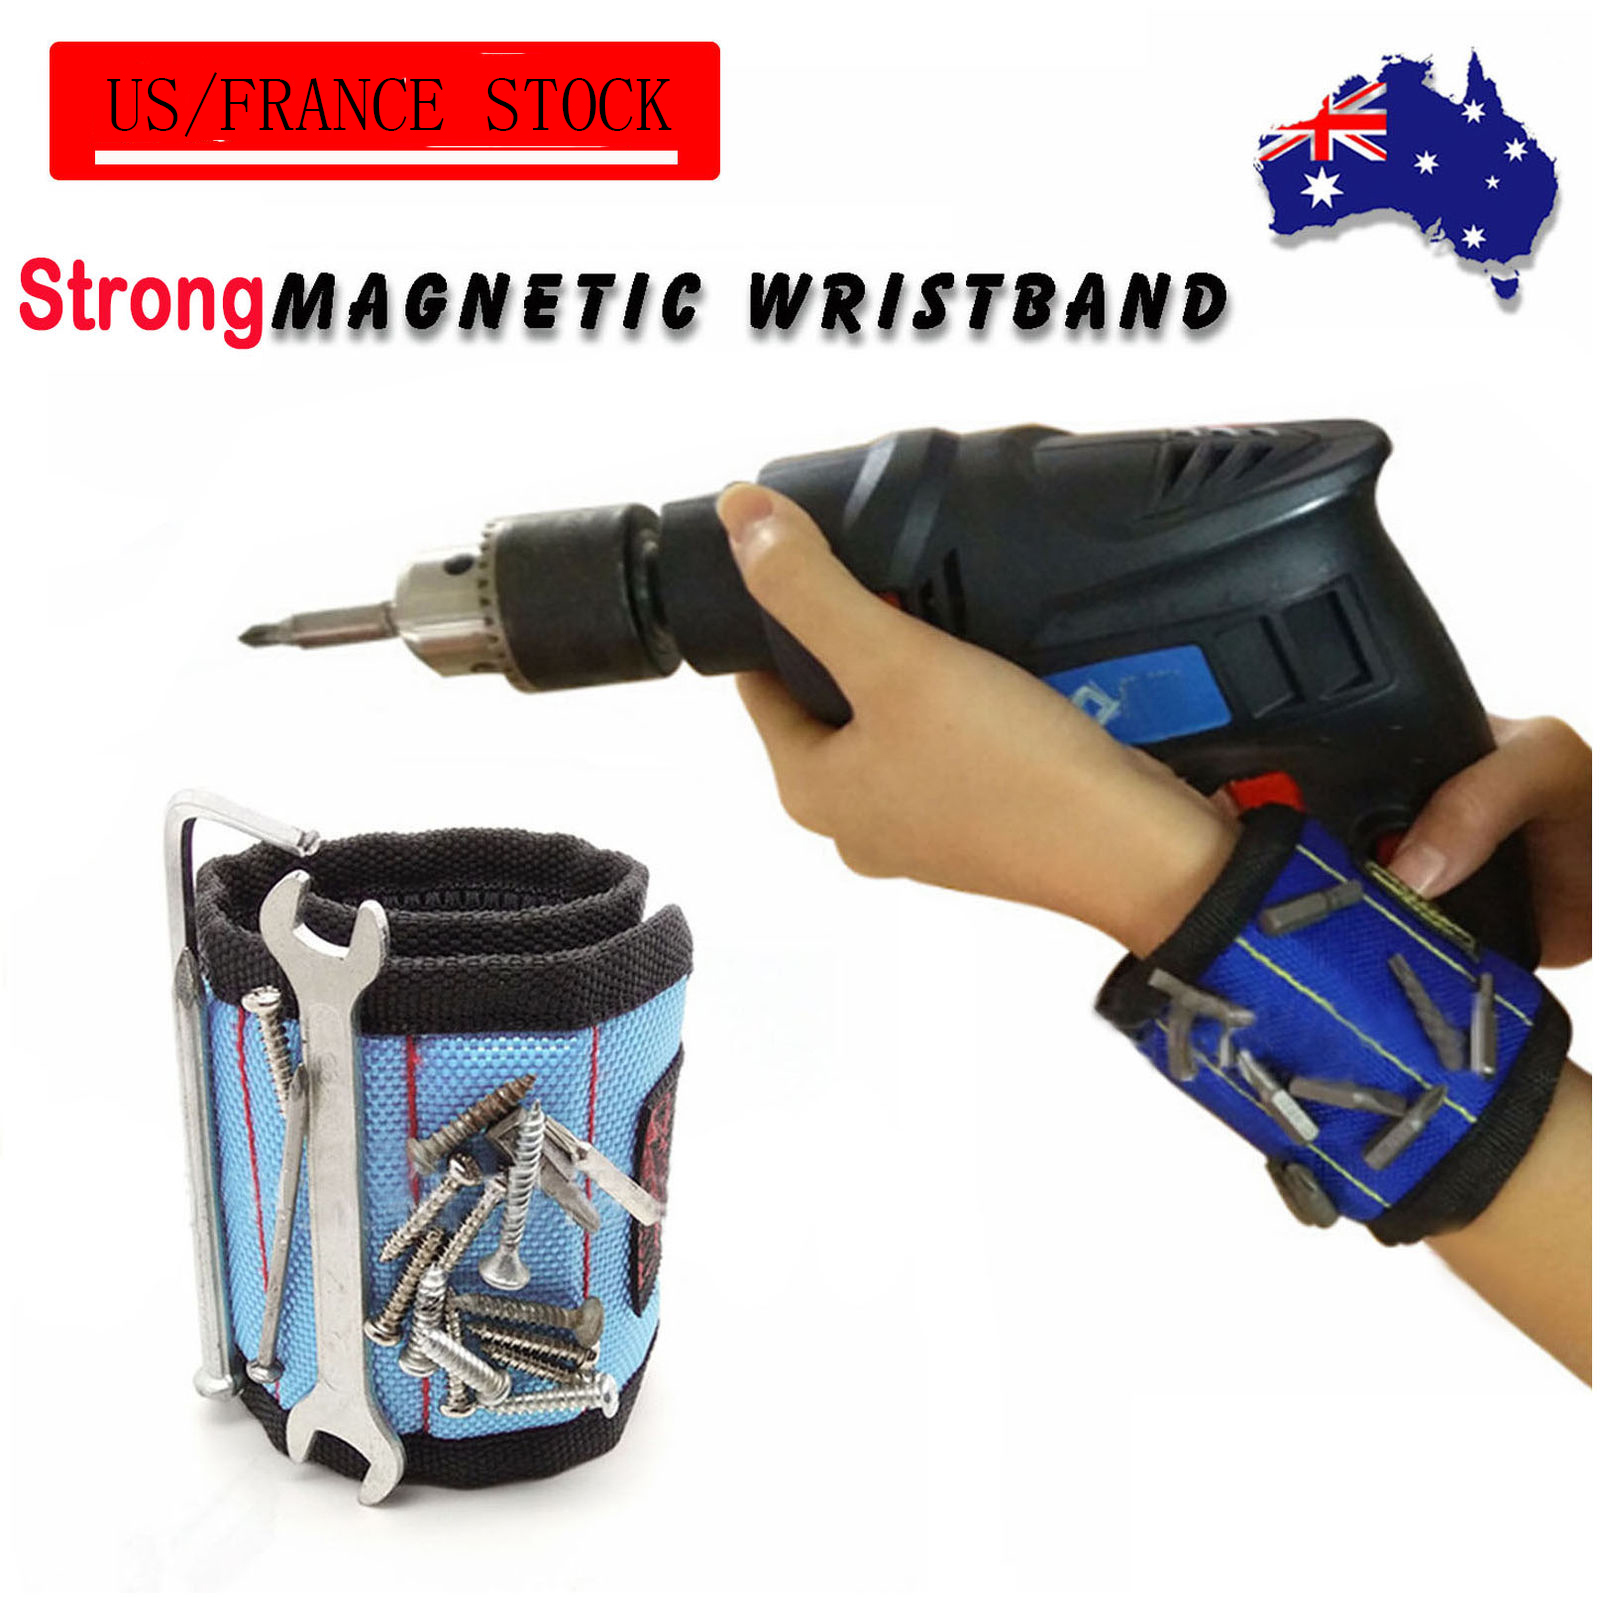 Hot Sale Magnets Screws Nails Drill Bits Electrician Bag Magnetic Wristband Portable Small Tool Bag Magnetic Bracelet For Tools